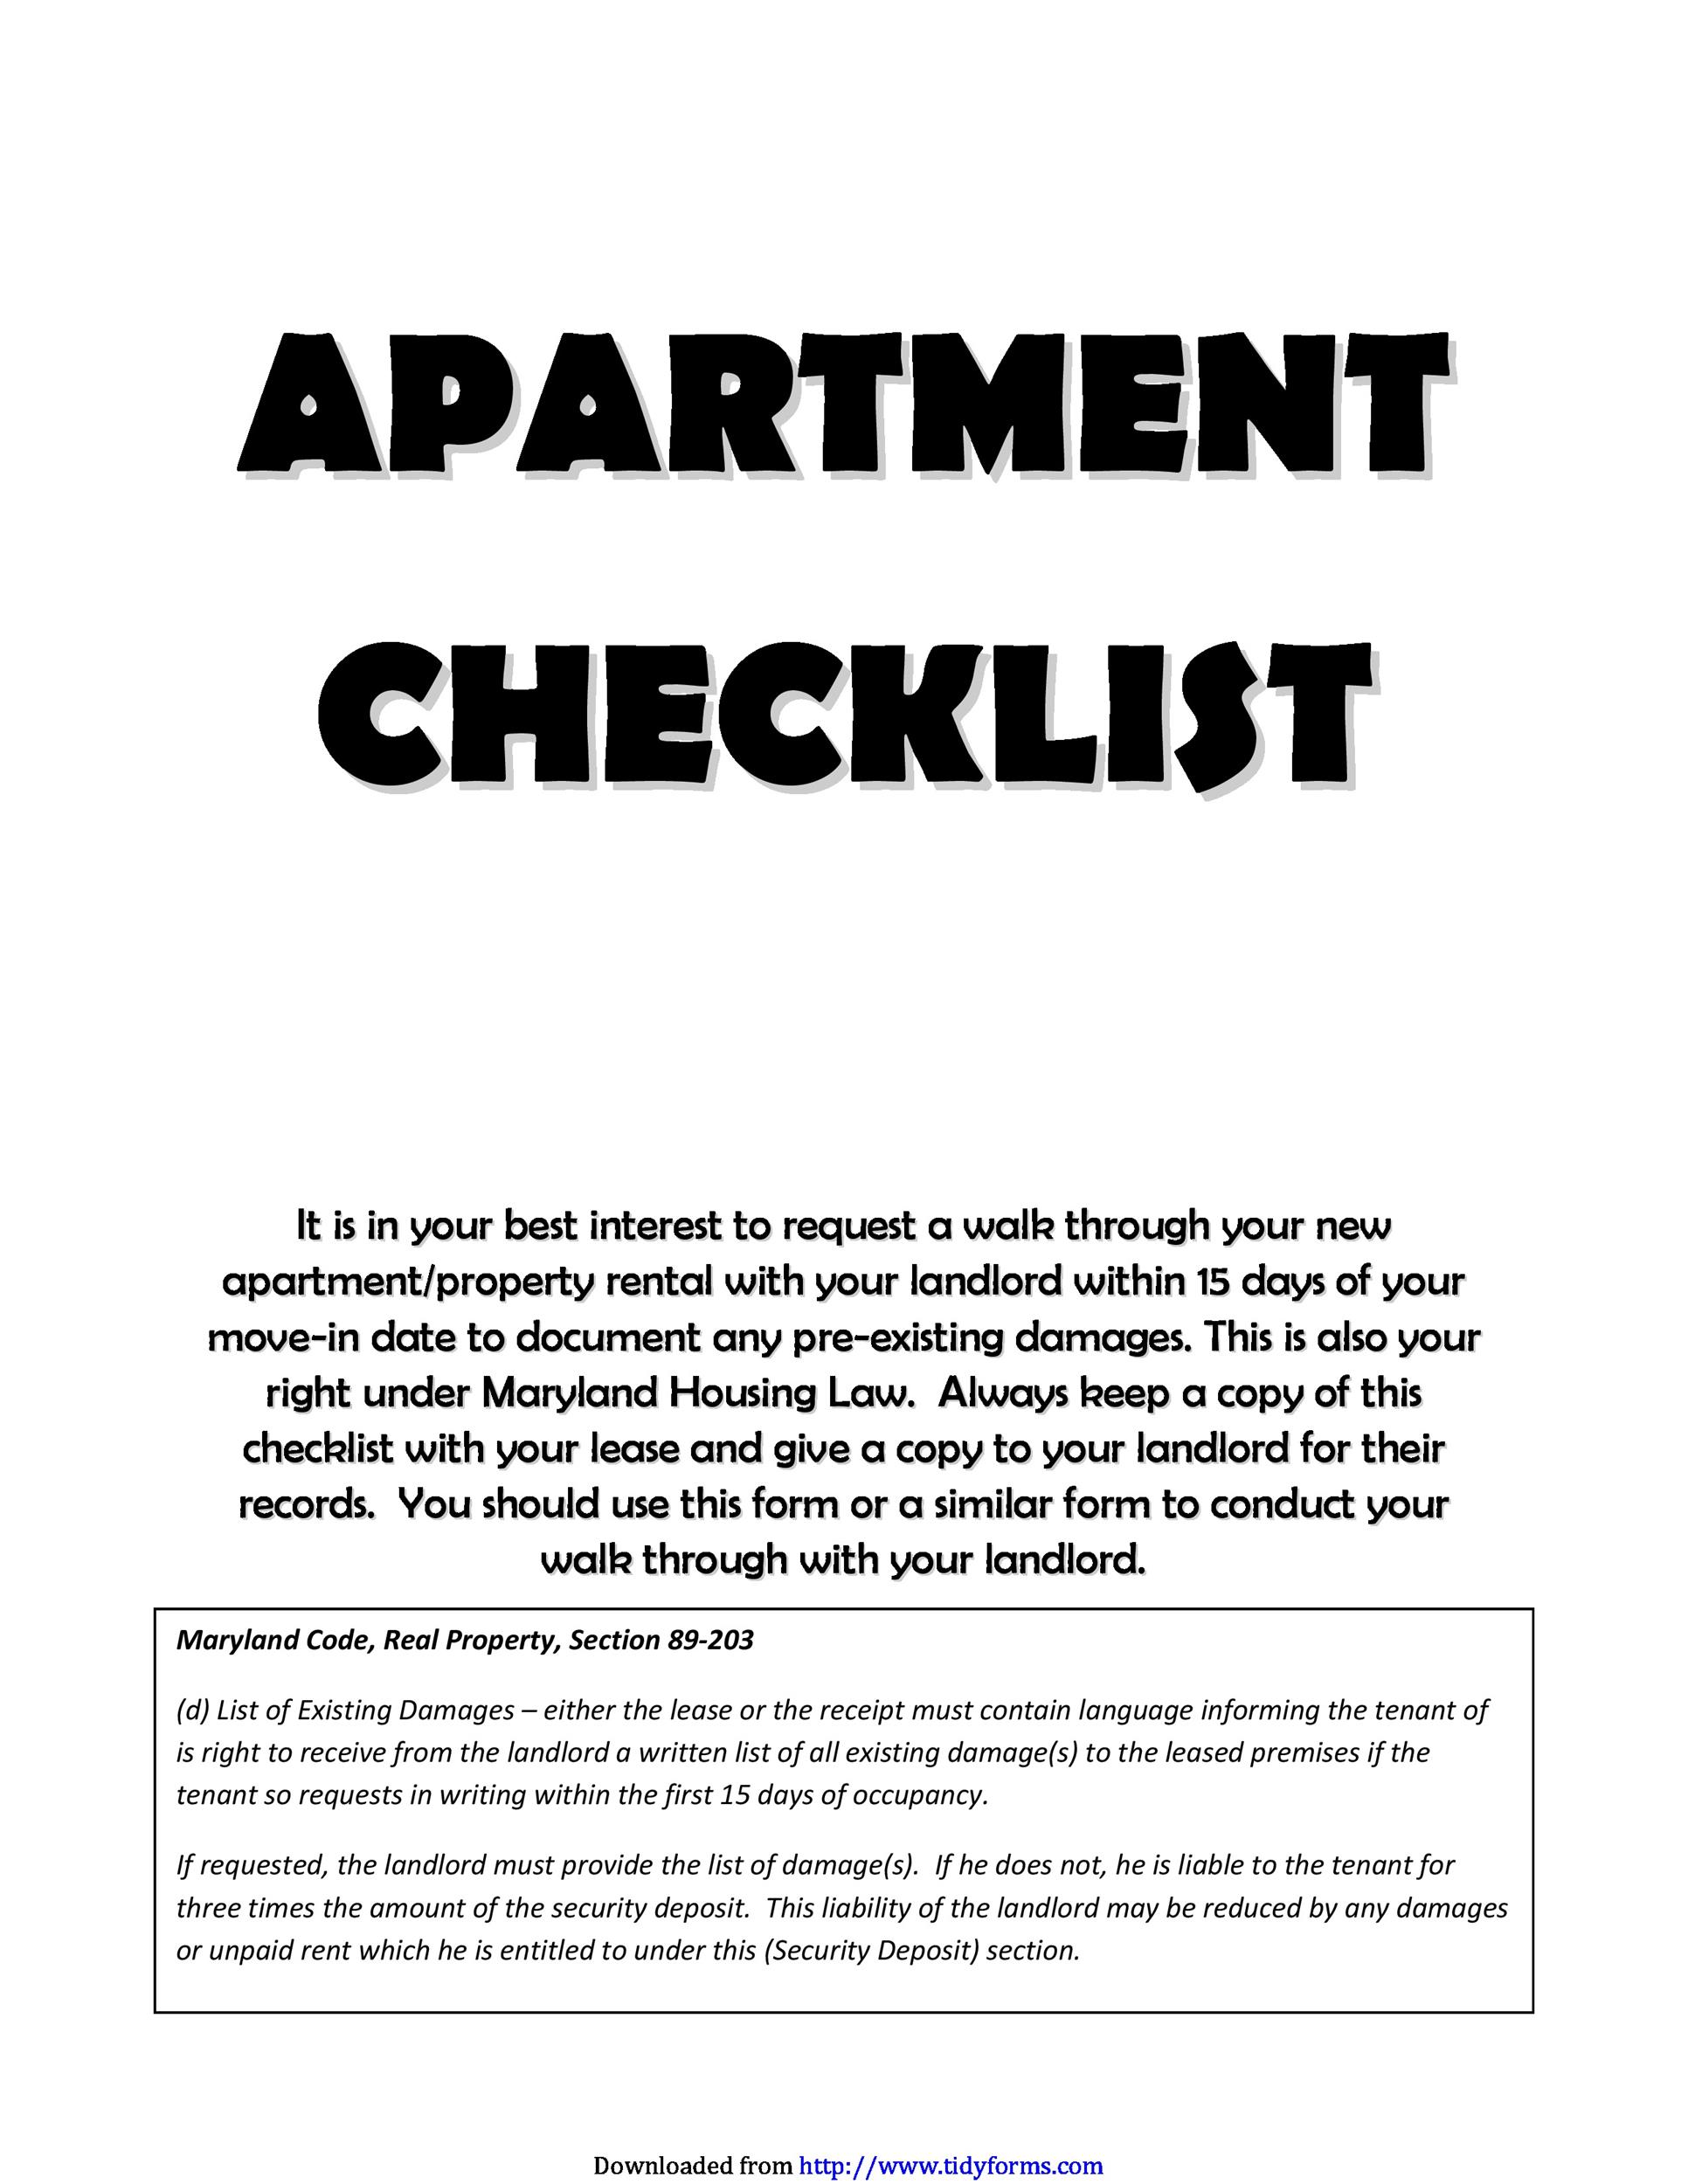 First / New Apartment Checklist - 40 Essential Templates - Template Lab